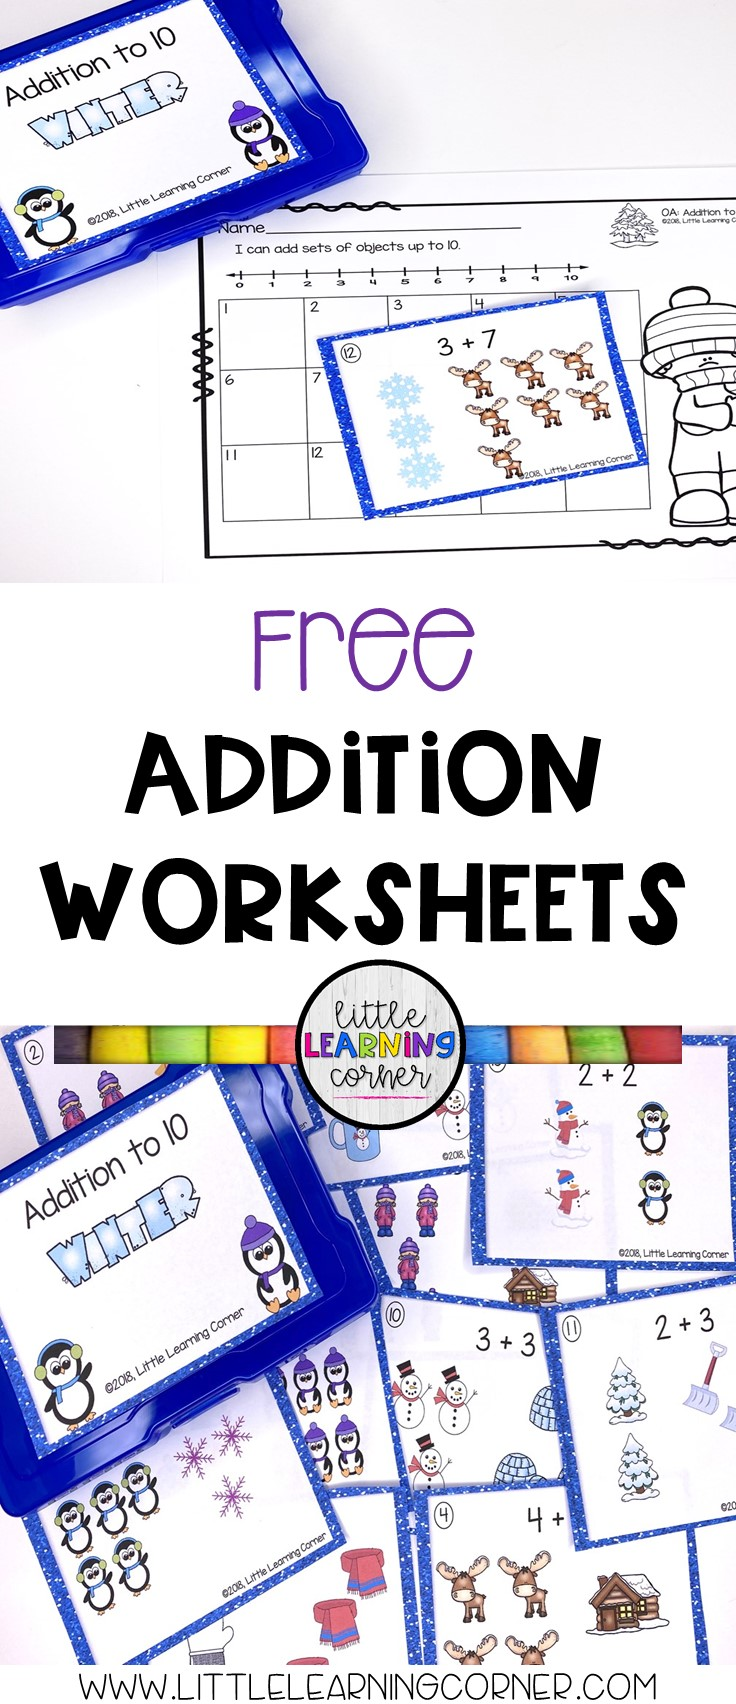 addition-worksheets-for-kindergarten-pin